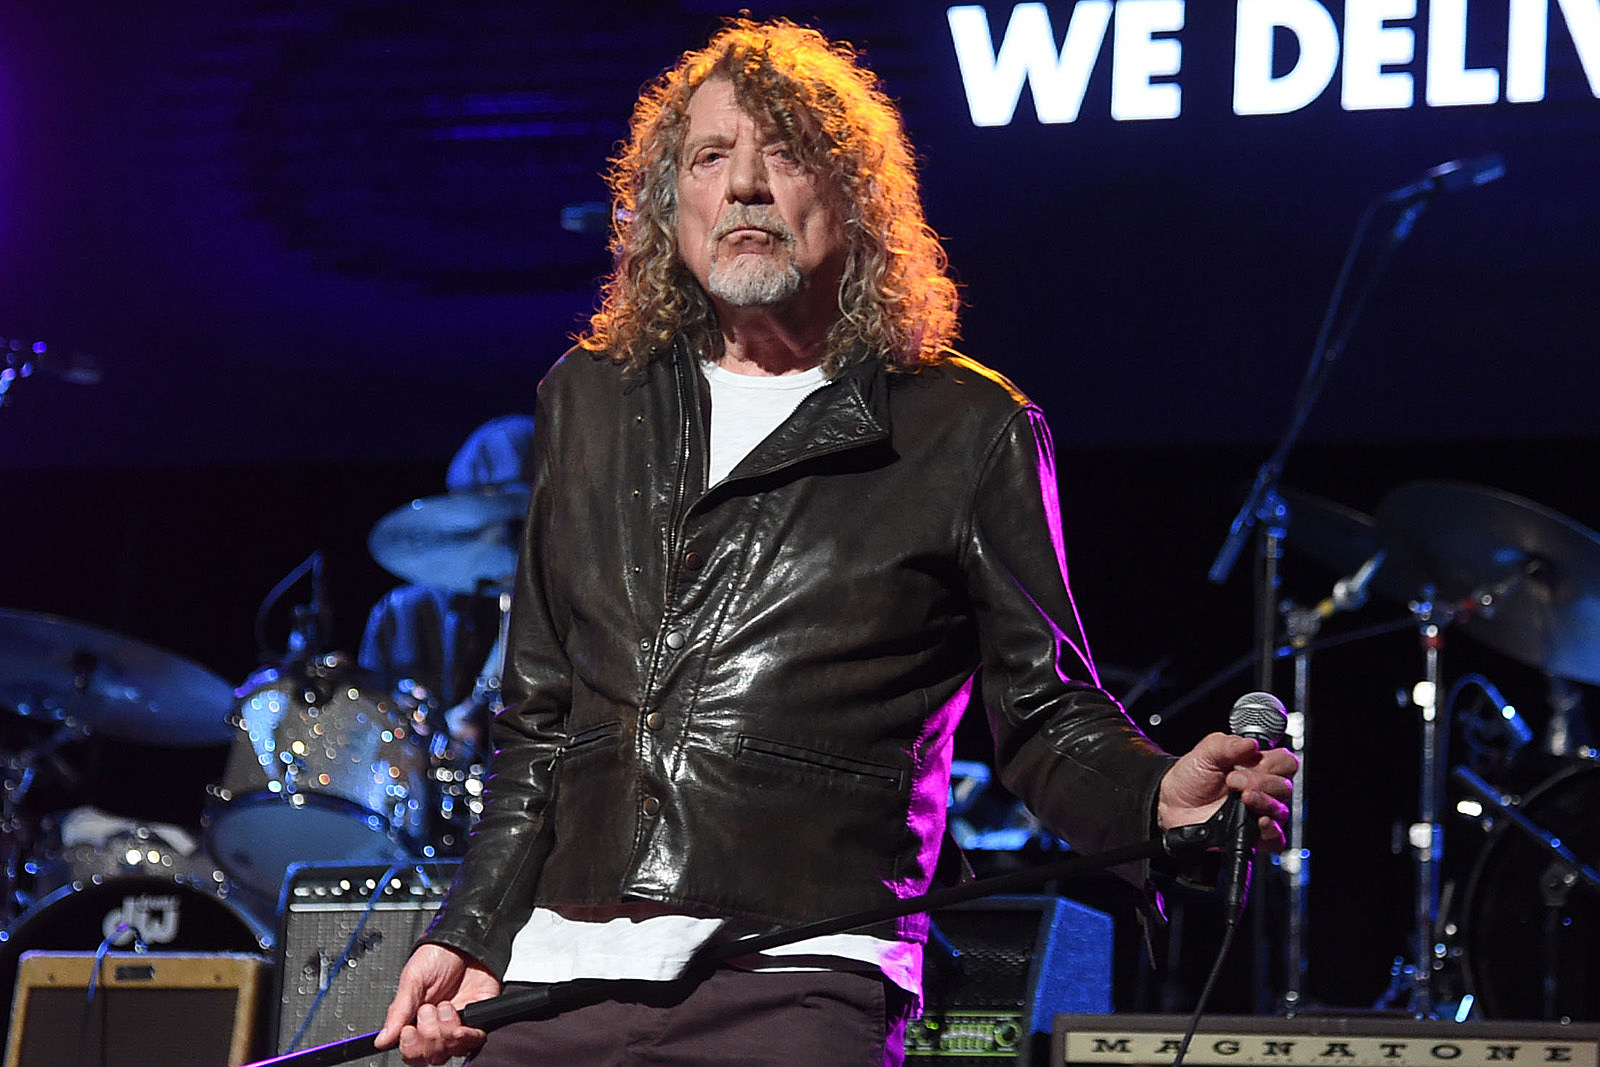 When Robert Plant Went 'Up My Own Rectum' With New Technology